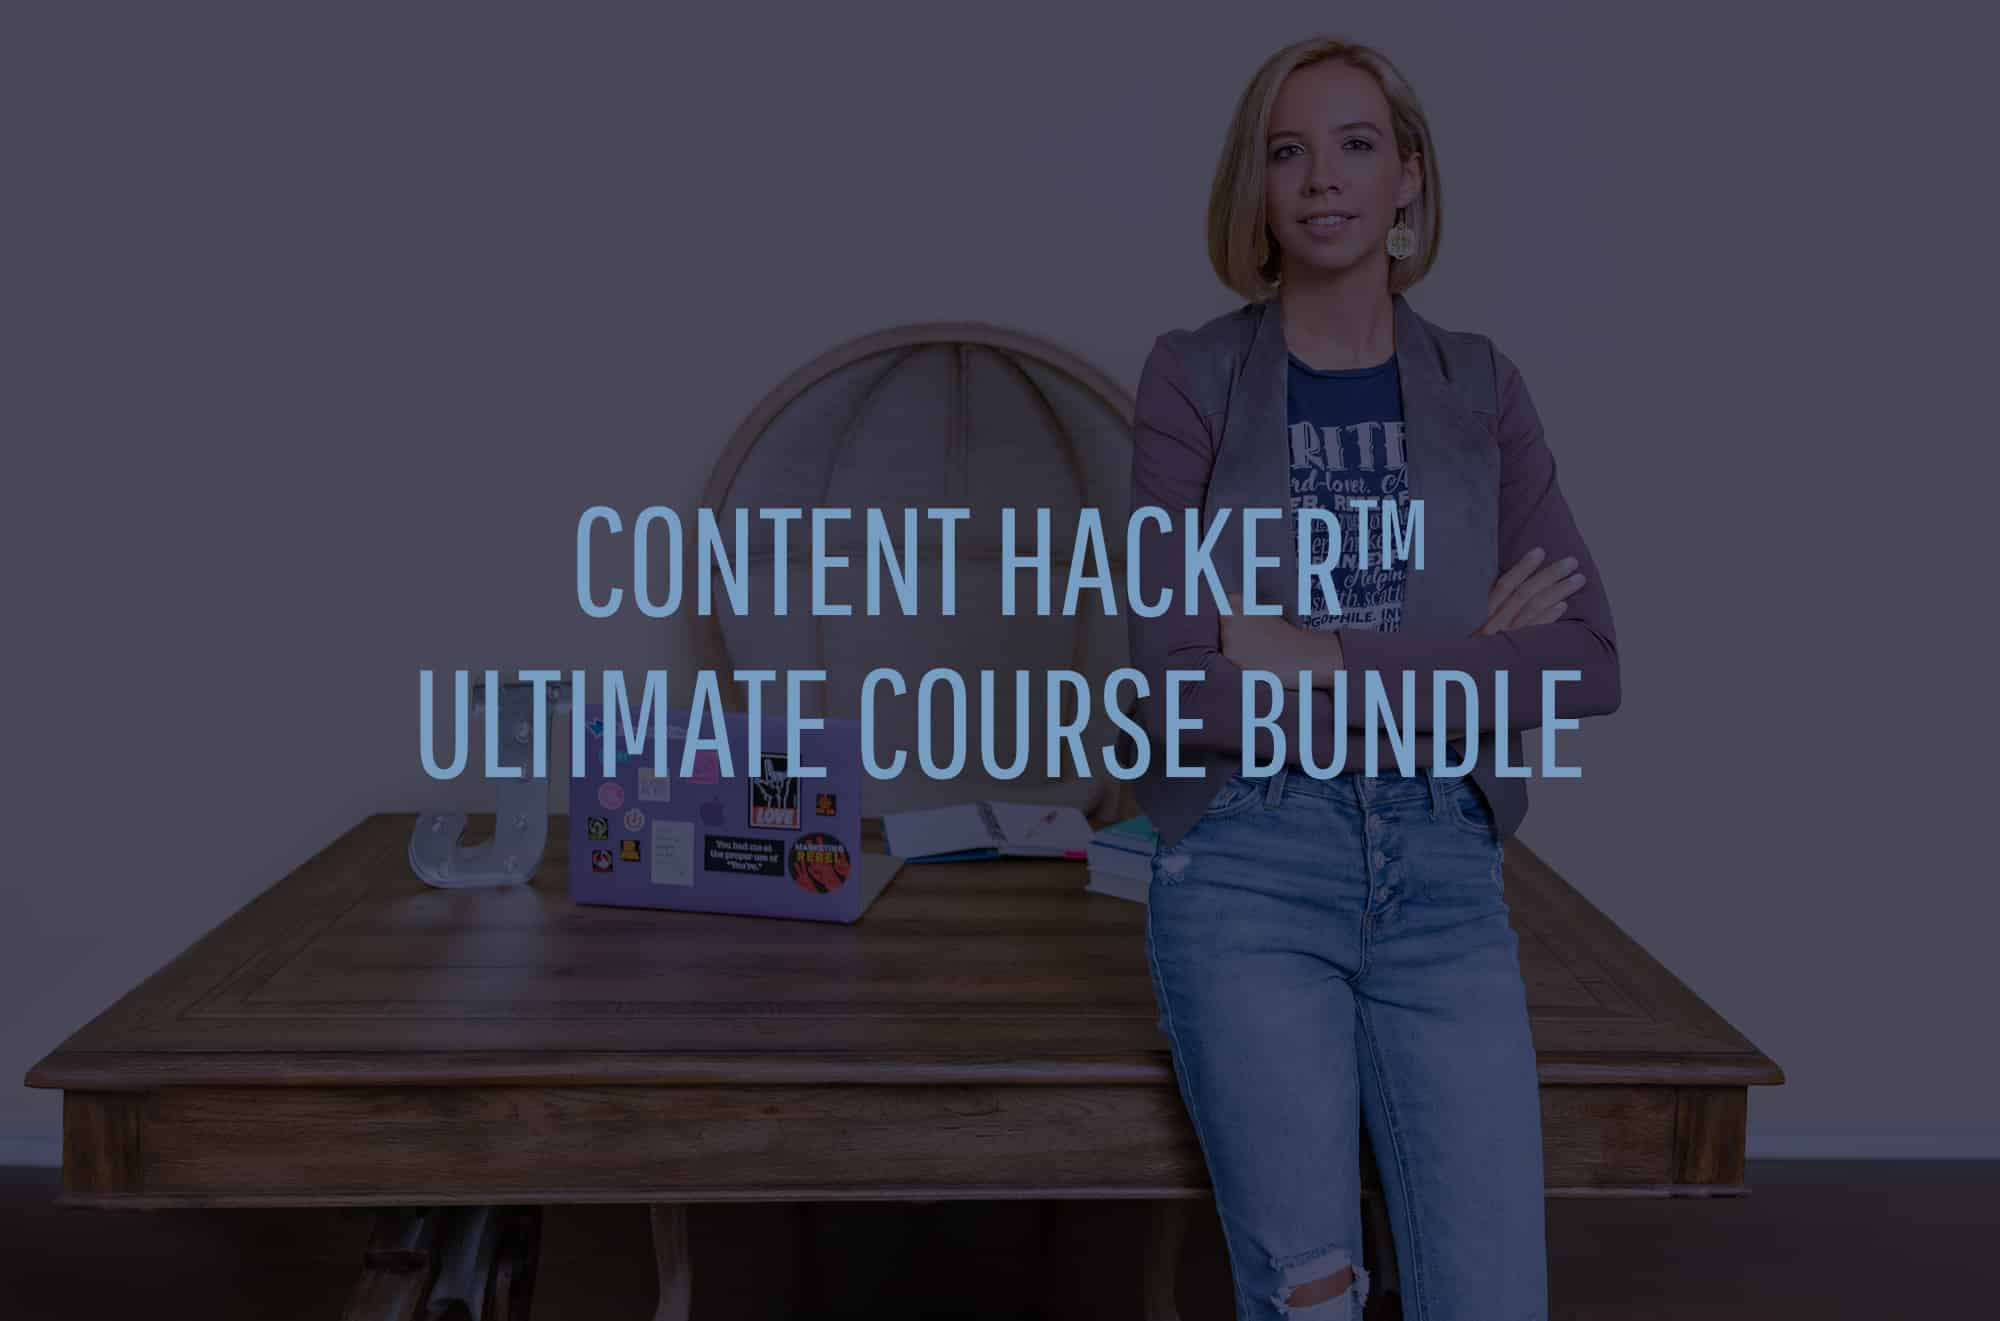 content hacker course bundle